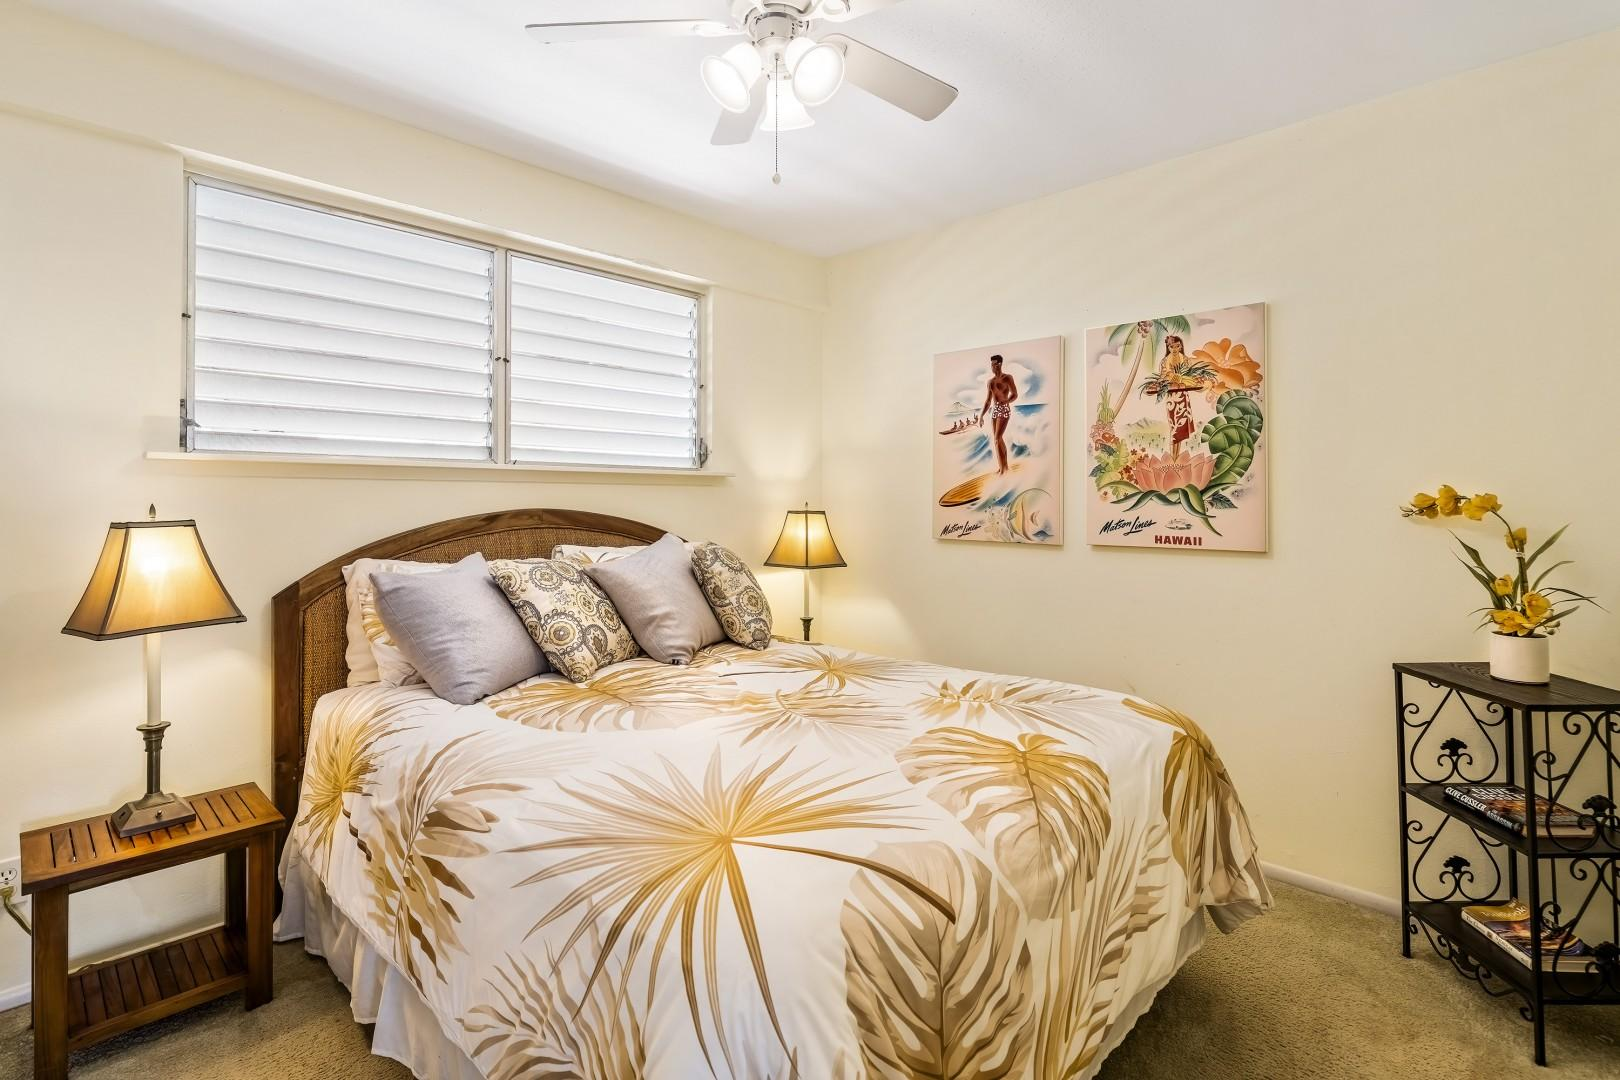 Guest bedroom equipped with Queen bed